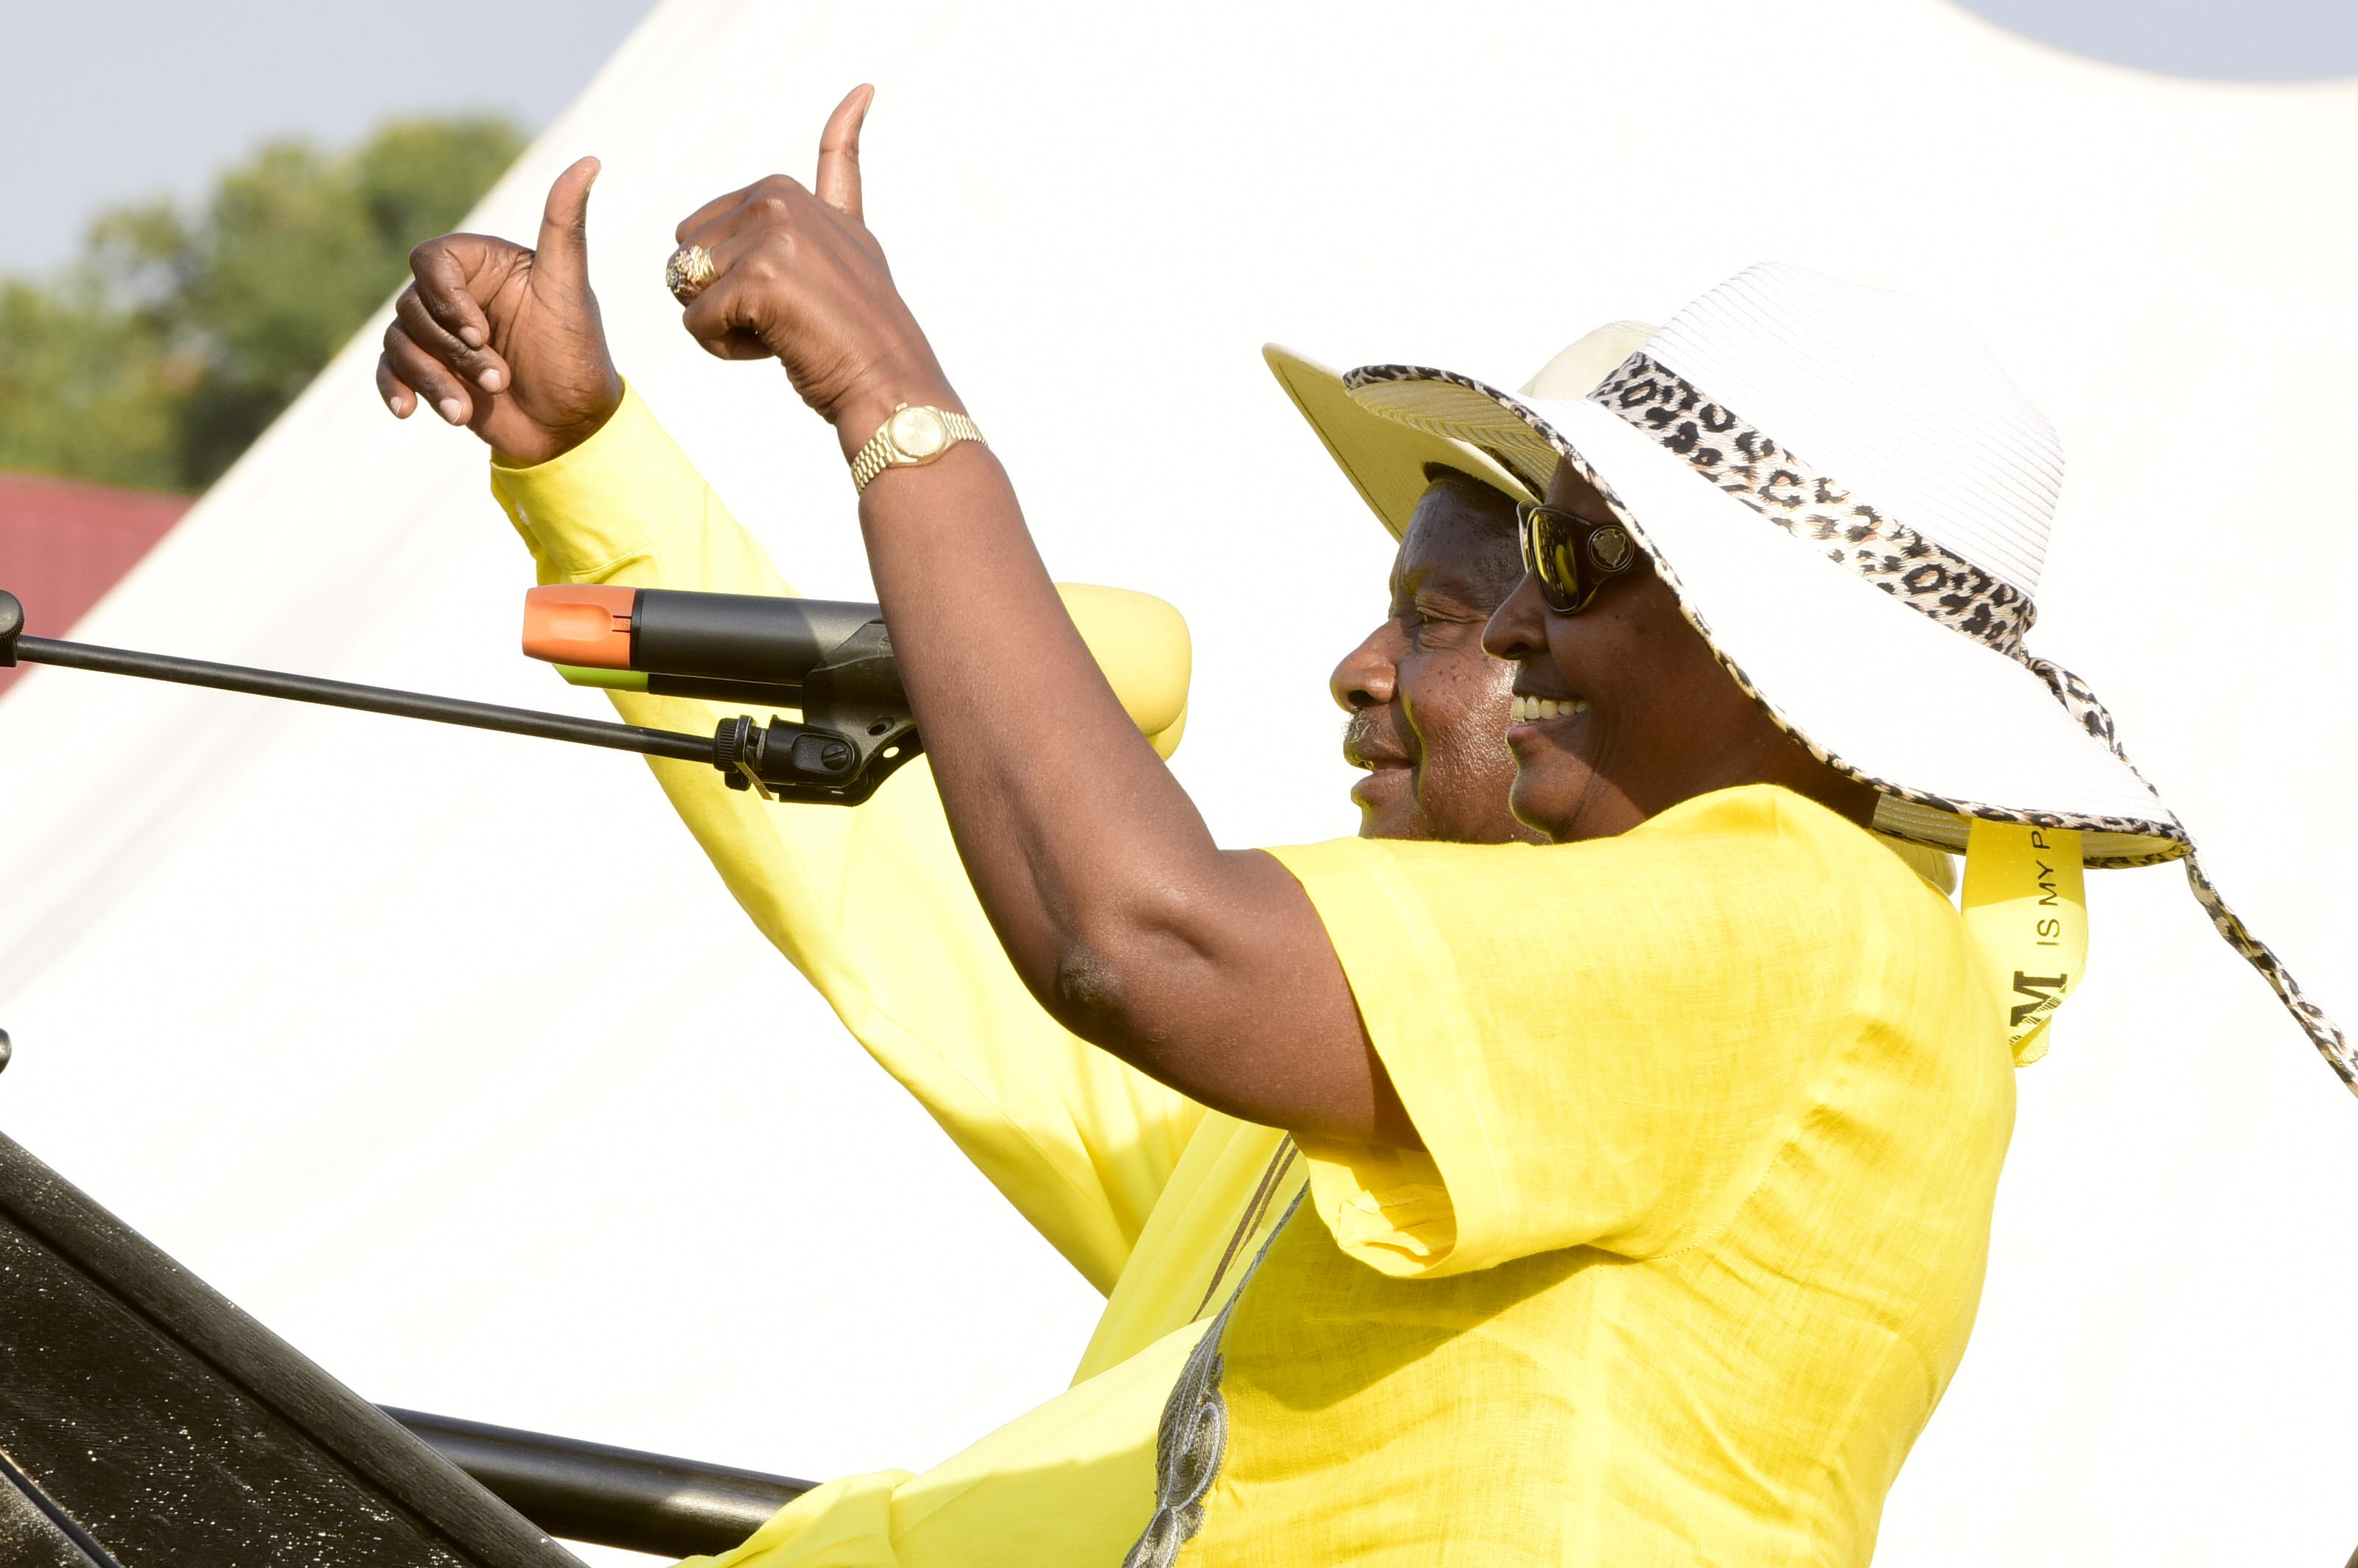 The President Yoweri Kaguta Museveni together with the first lady Janet Museveni campaign at a rally at Kyamate Secondary School playground on 8th January 2016.